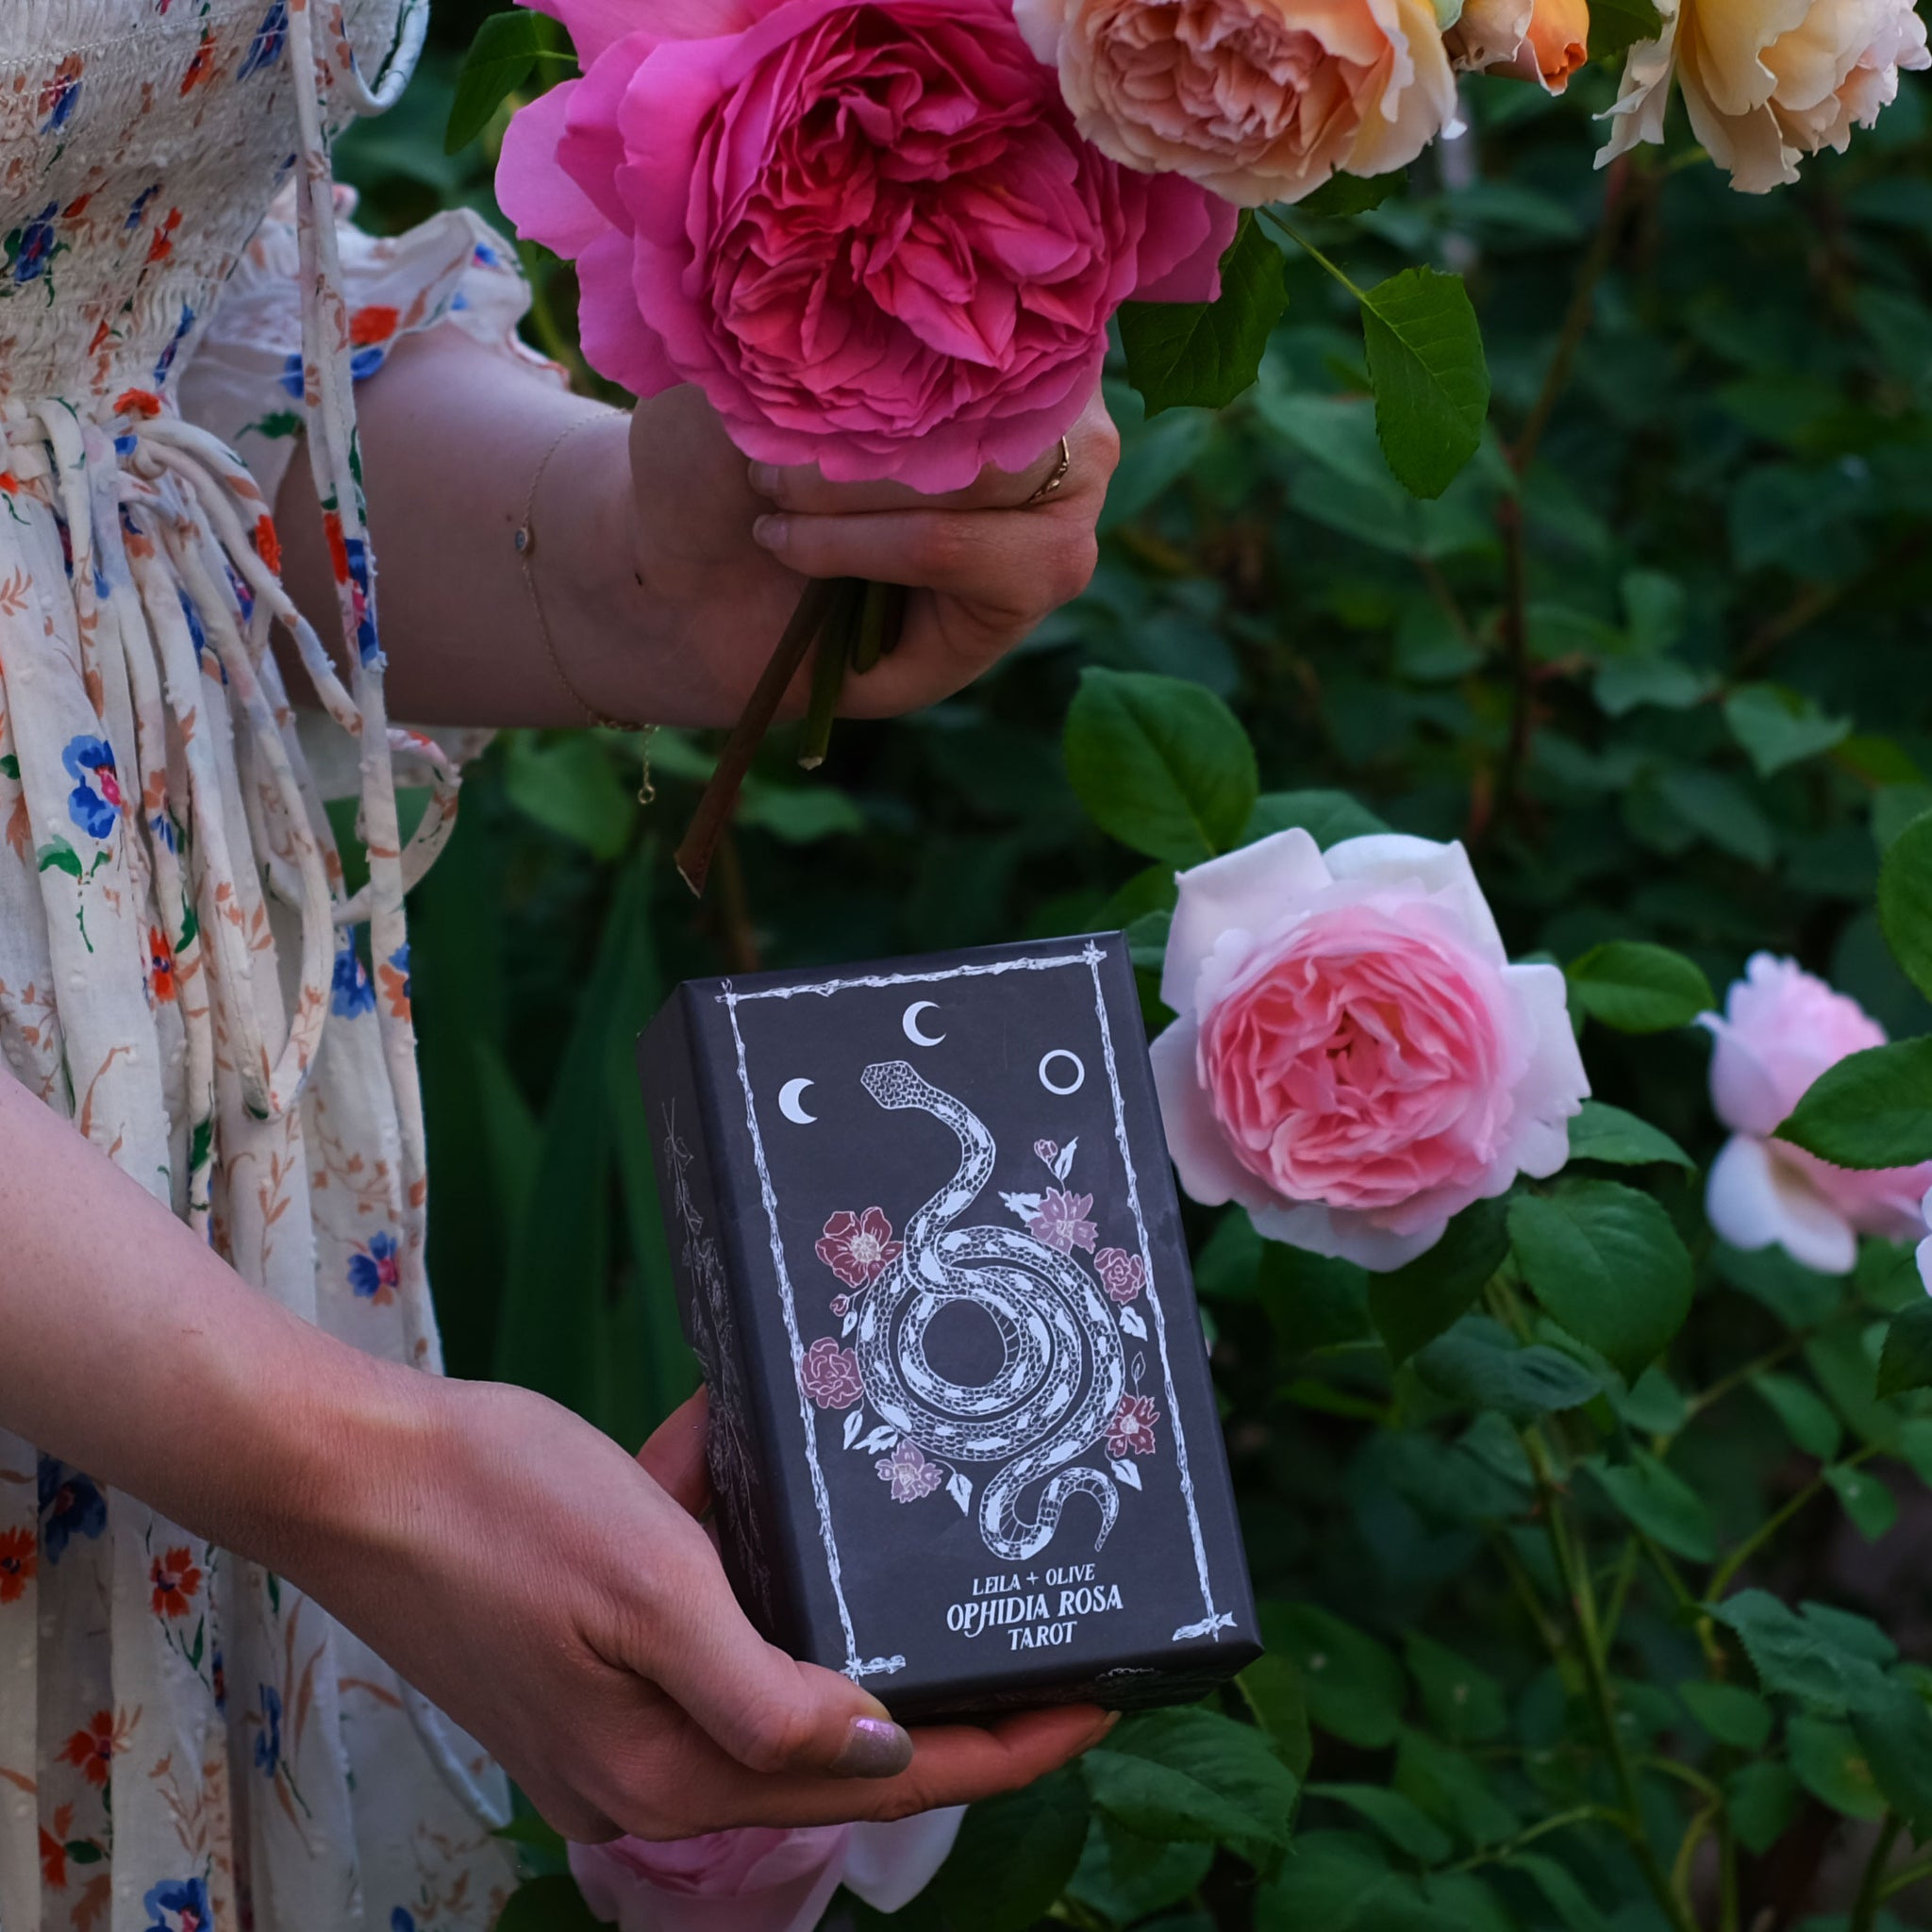 Botanical Tarot deck, the Ophidia Rosa, is illustrated by hand and weaves together the magic of the garden, botanicals, flora and the plant kingdom with traditional Tarot meanings.